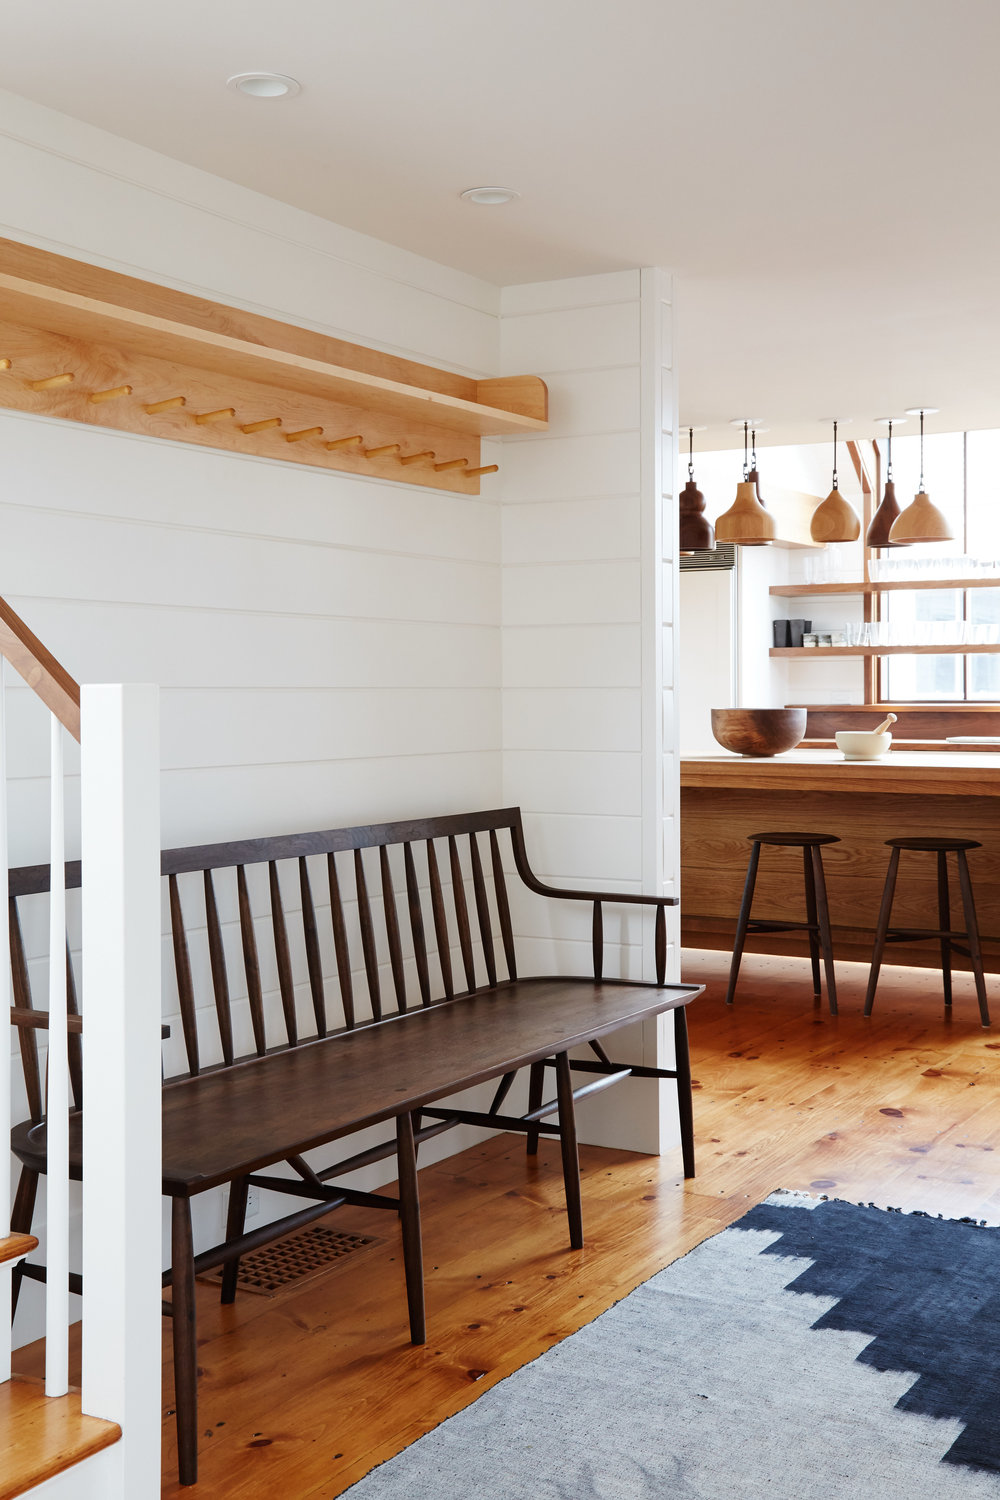 Custom shelf designed by Shelter Collective, fabricated by Marshall Farm Woodworks